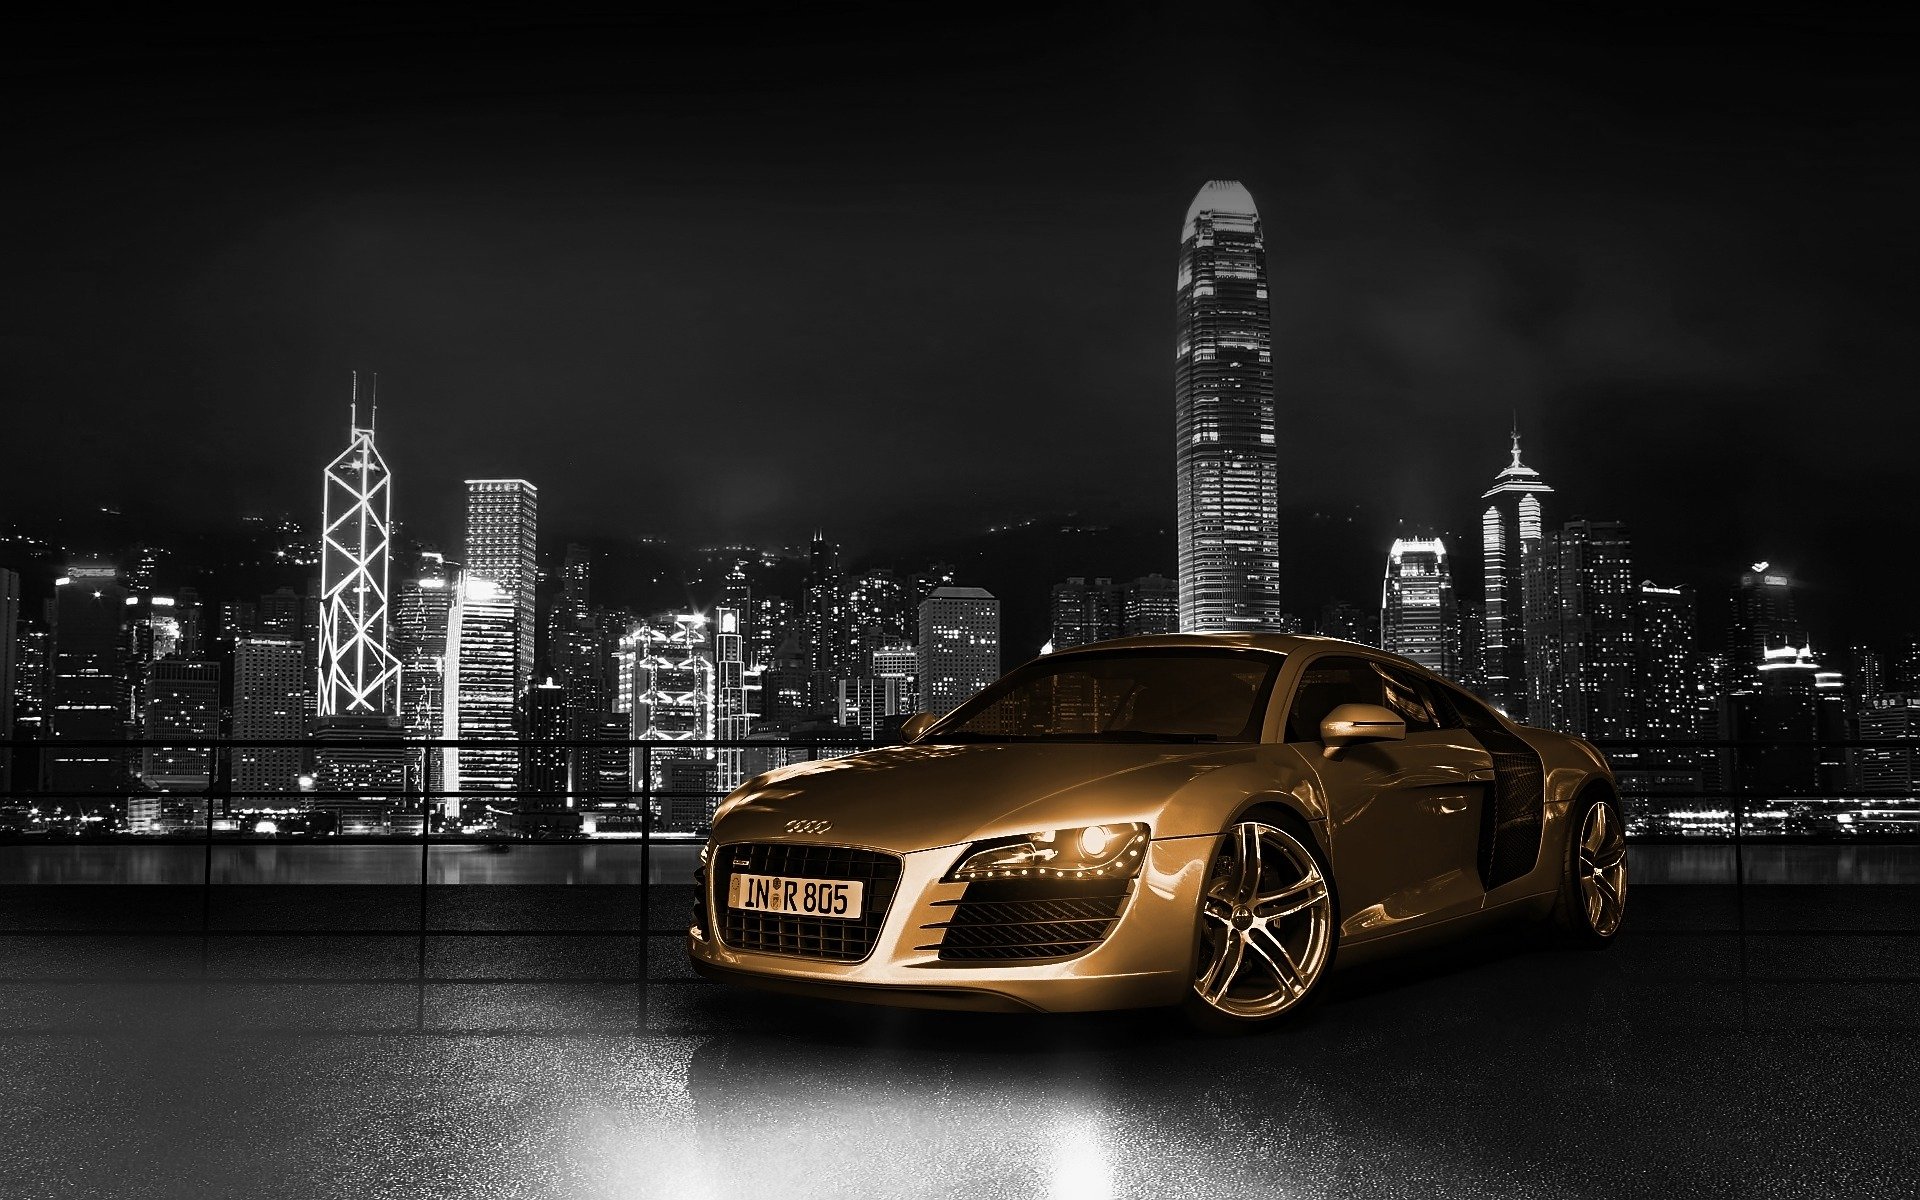 Audi R Gold Wallpaper Audi Cars Wallpapers In Jpg Format For Free - Audi car 3d